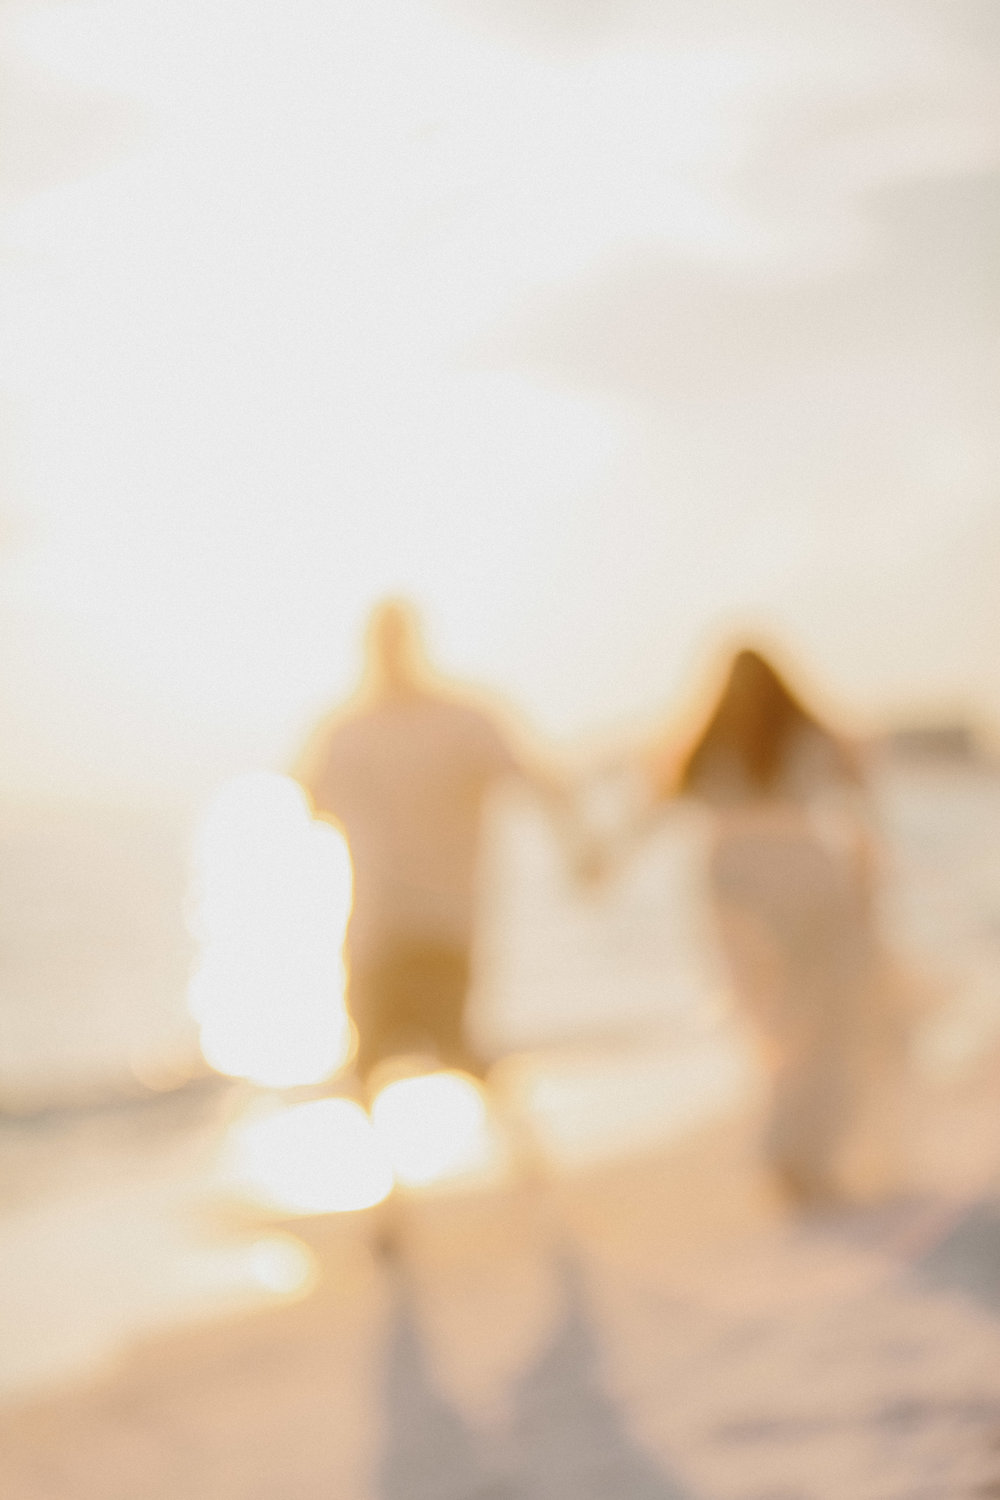 destin_sunset_beach_elopement_intimate_wedding_photographer_florida_documentary_1255.jpg